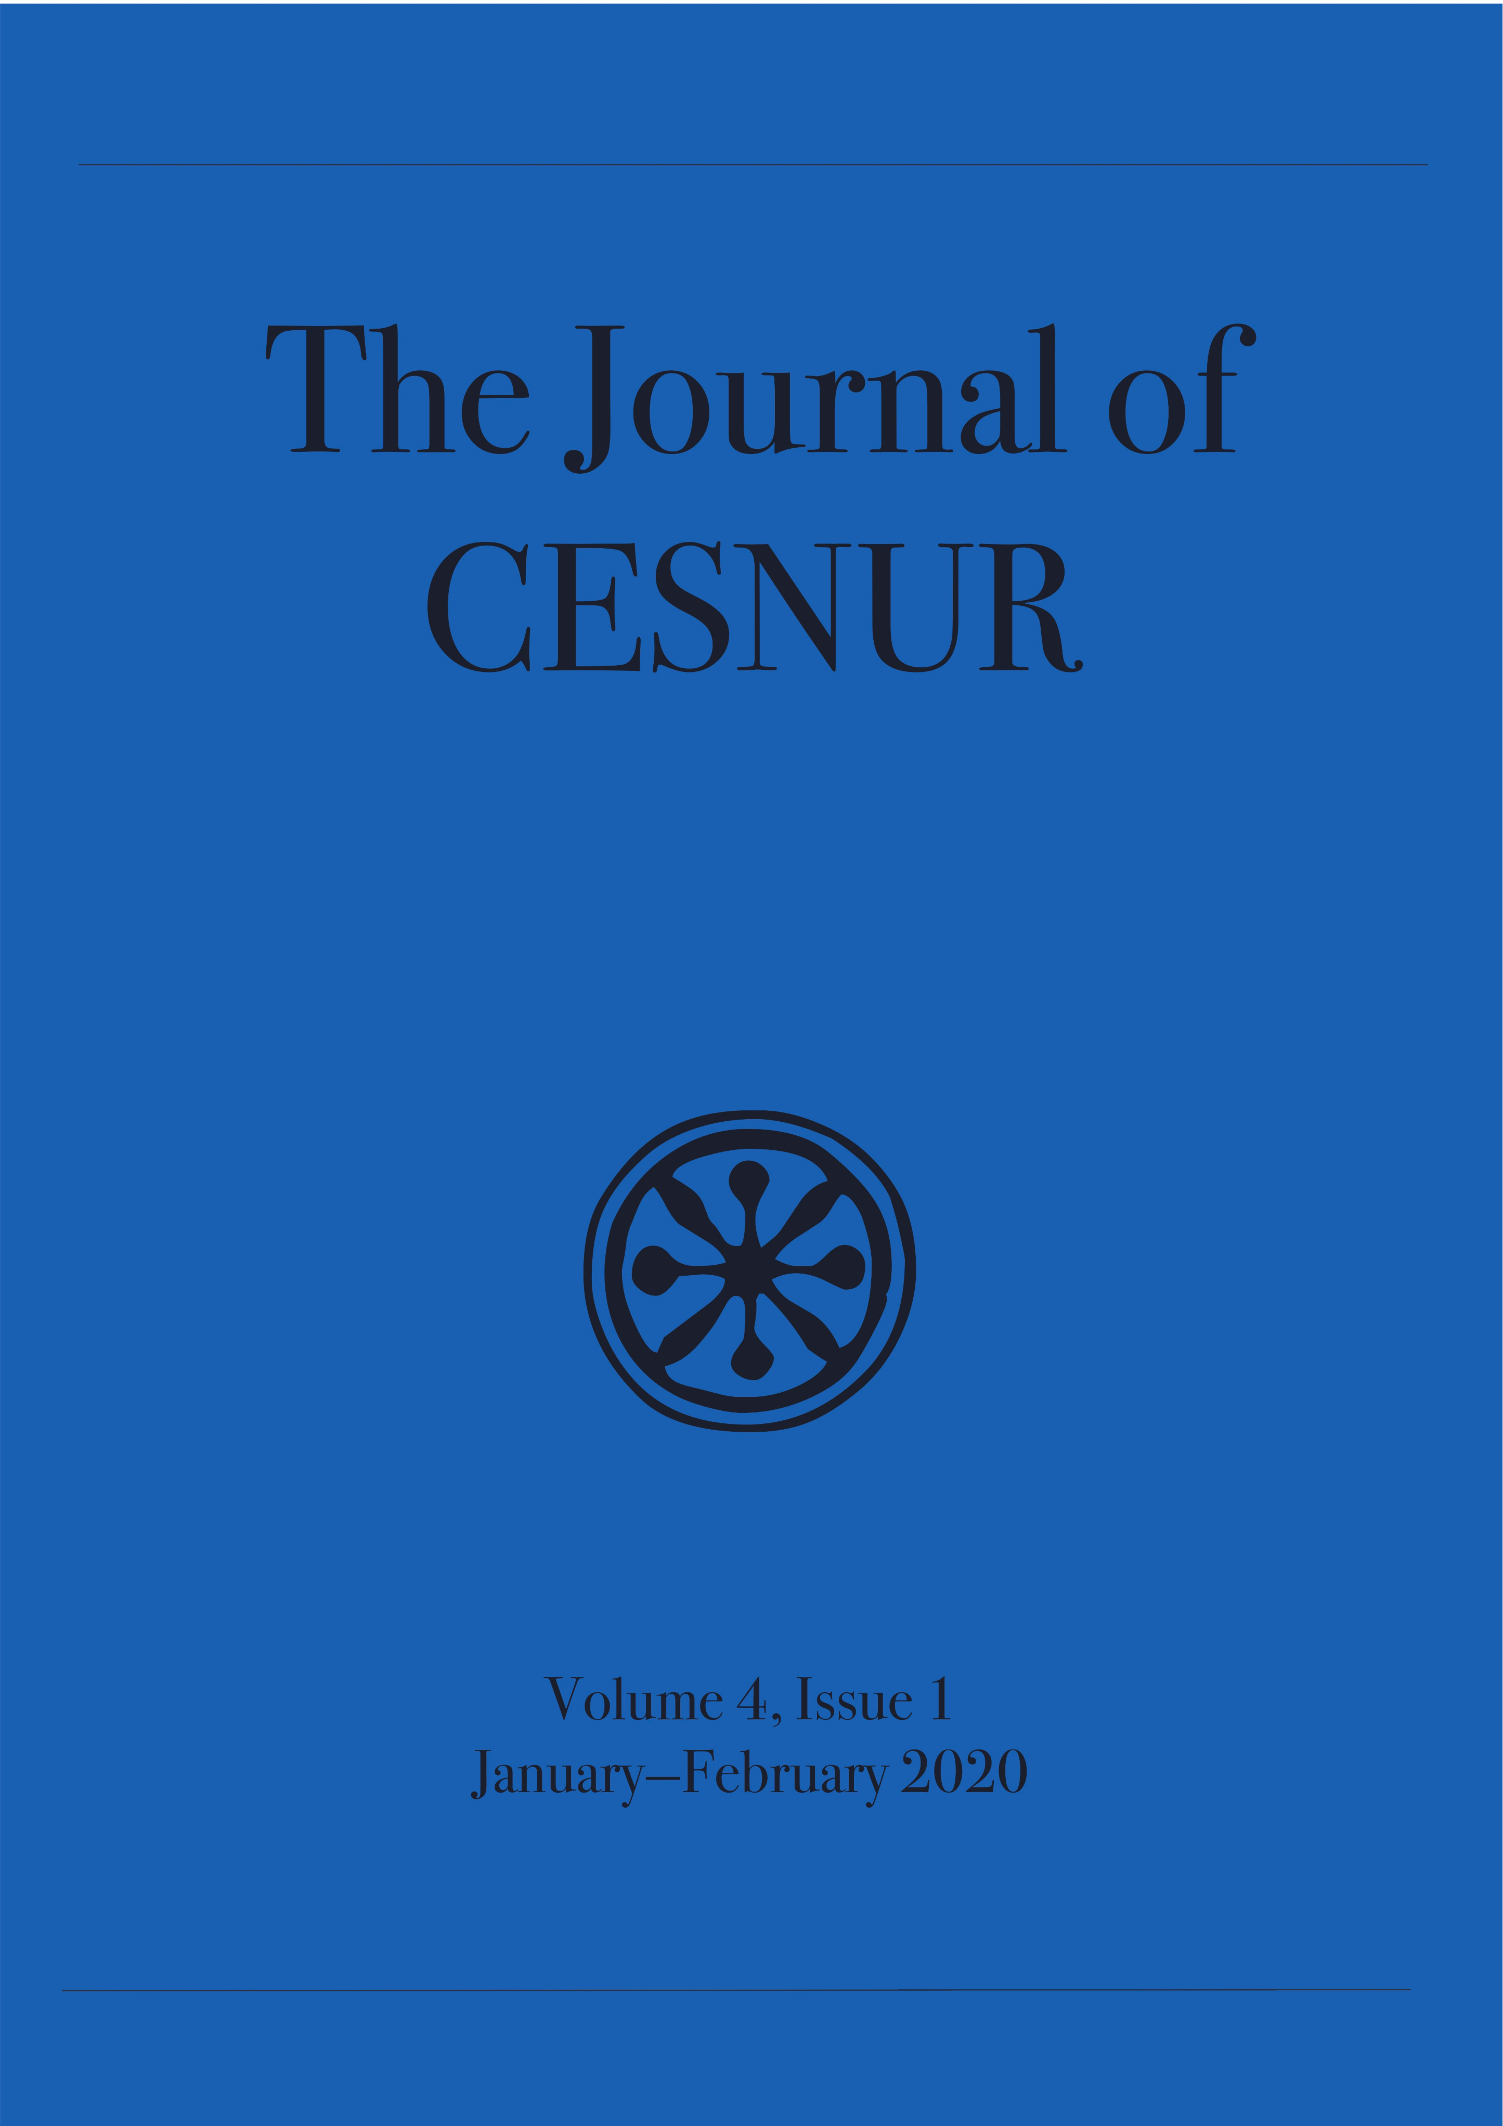 The Journal of Cesnur Volume 4 Issue 1 cover